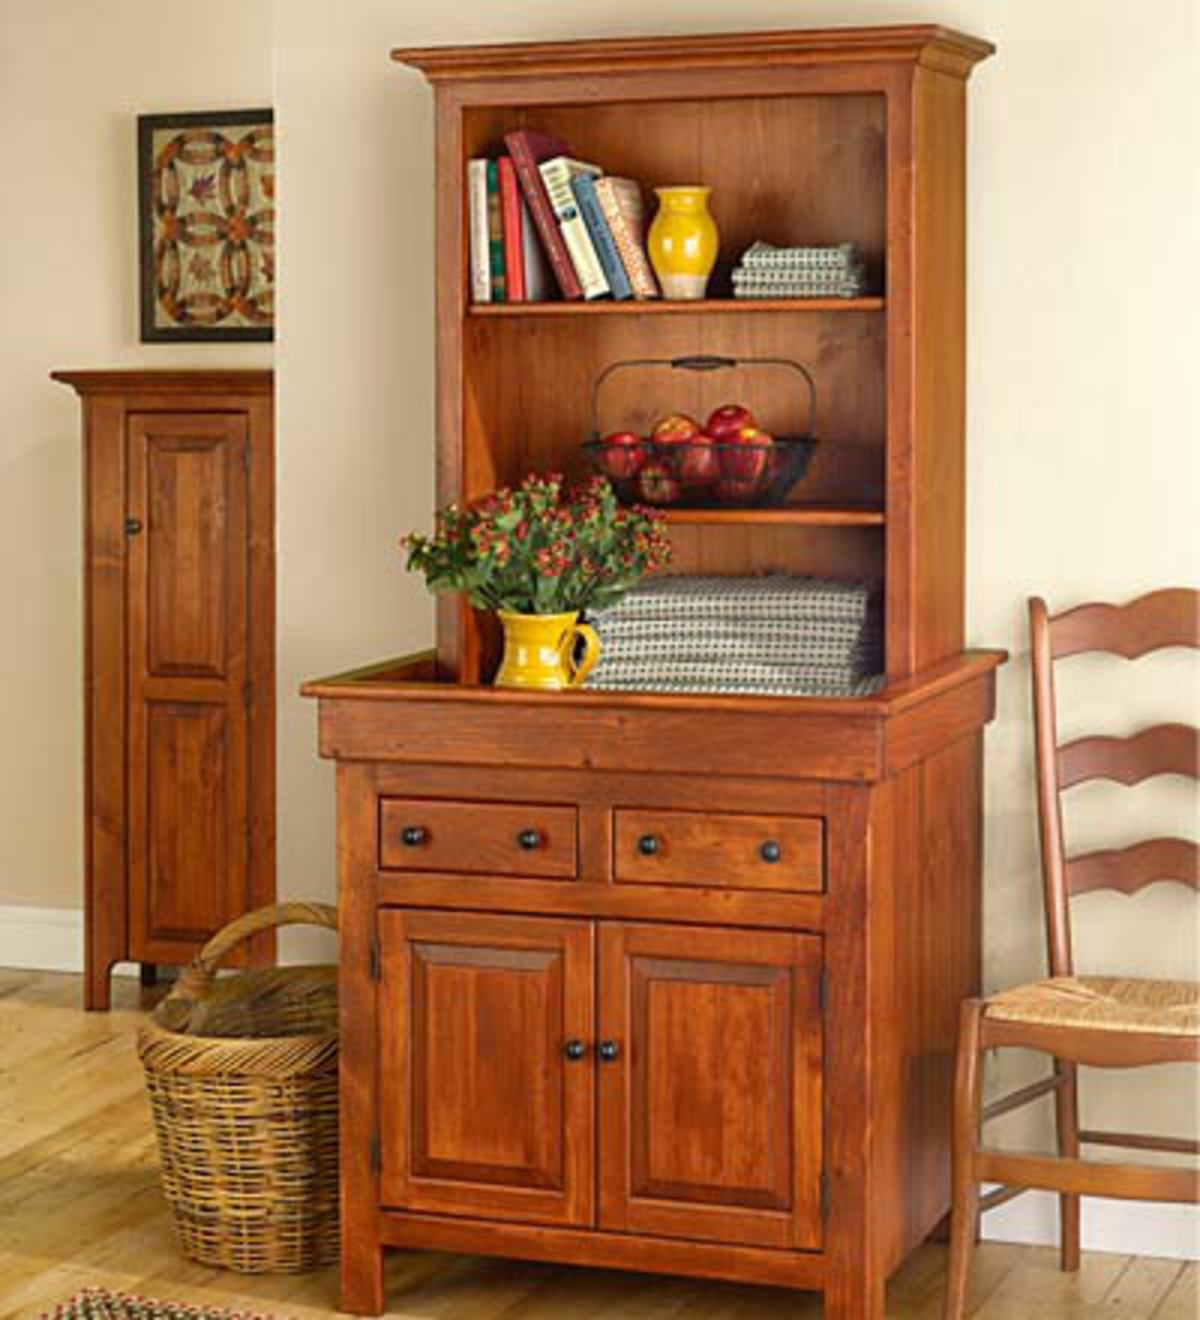 Medium Conestoga Cupboard, Painted Finish